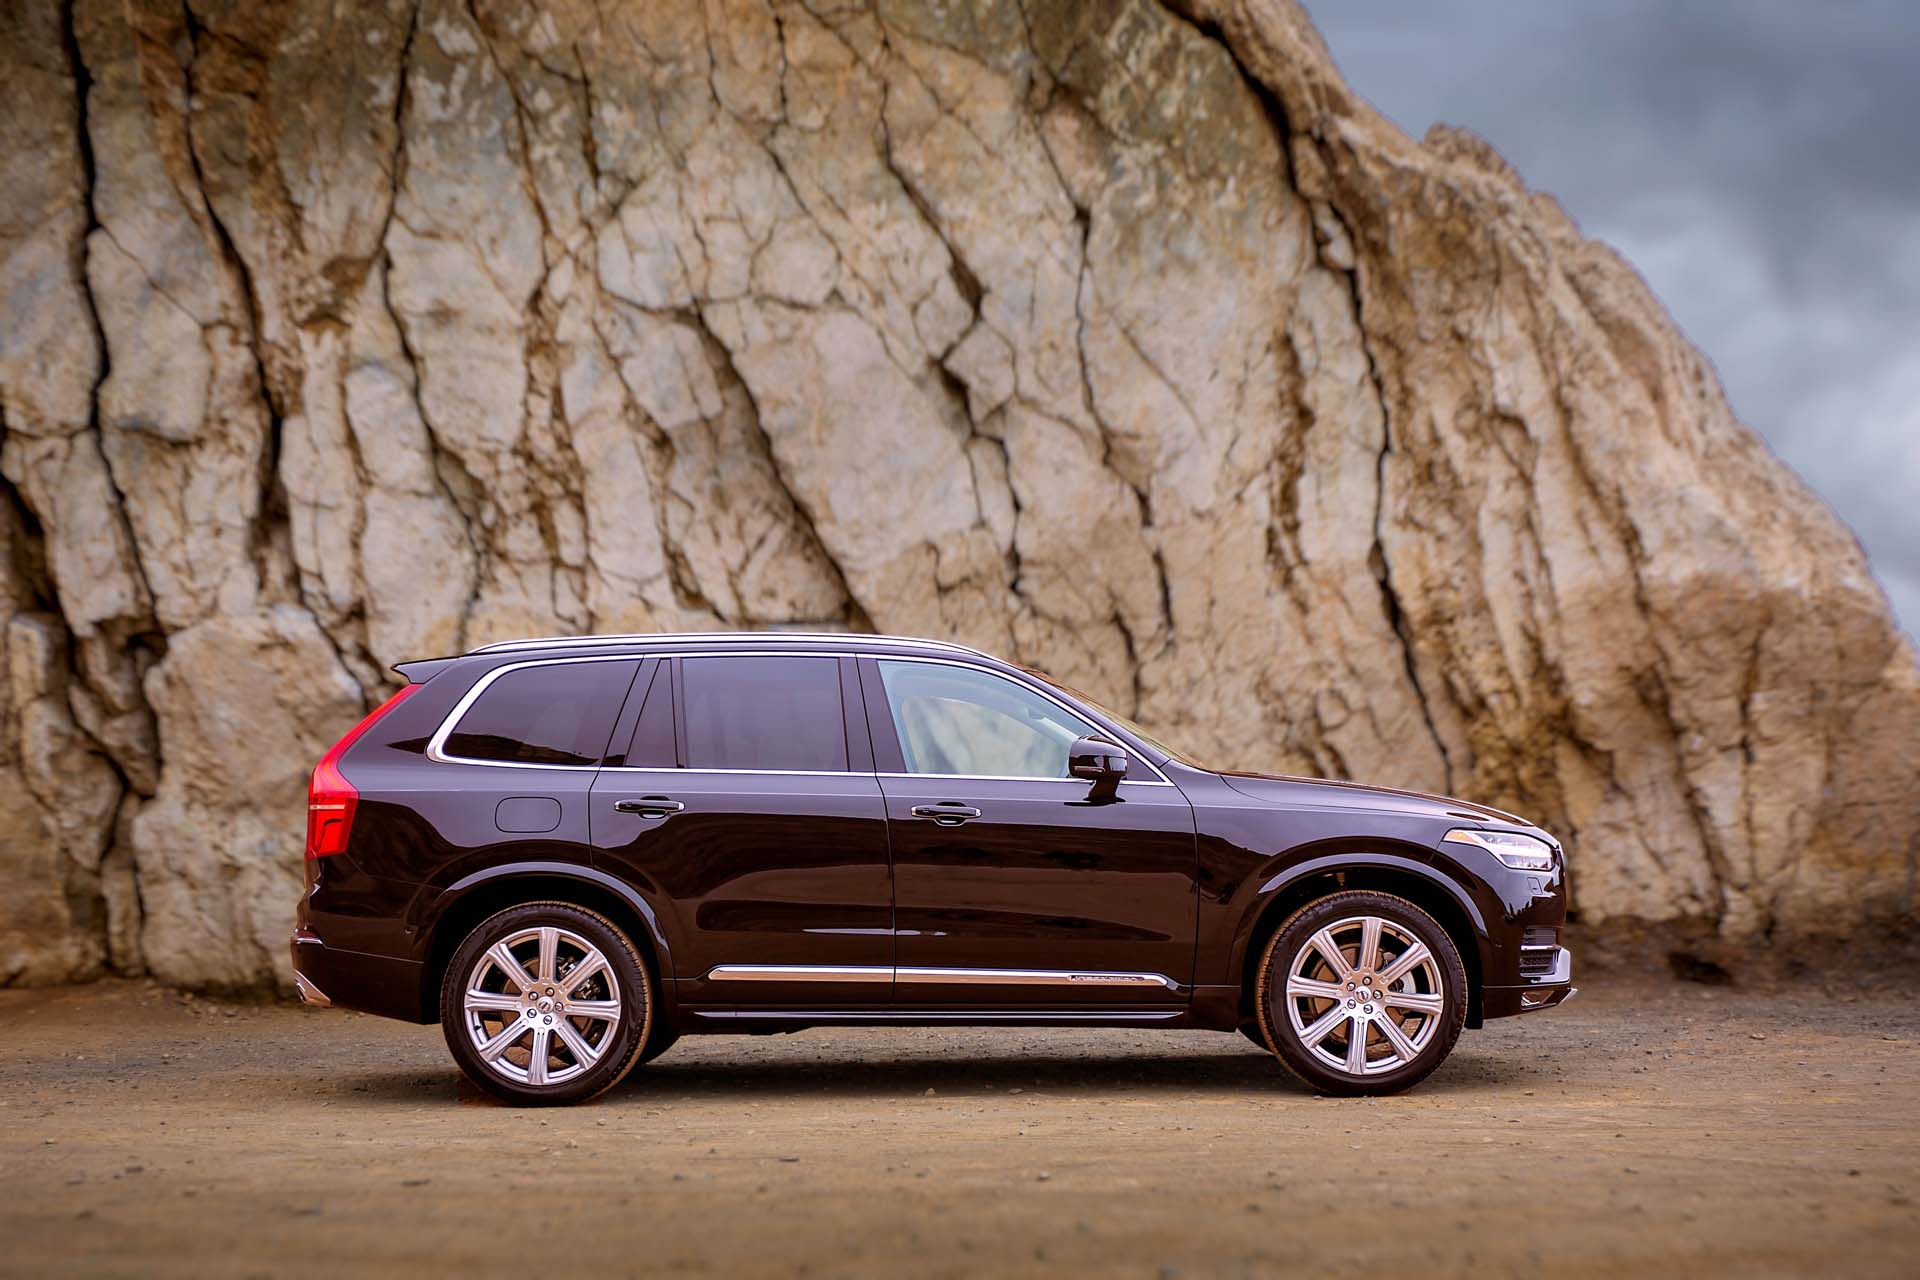 new and used volvo xc90 prices photos reviews specs. Black Bedroom Furniture Sets. Home Design Ideas